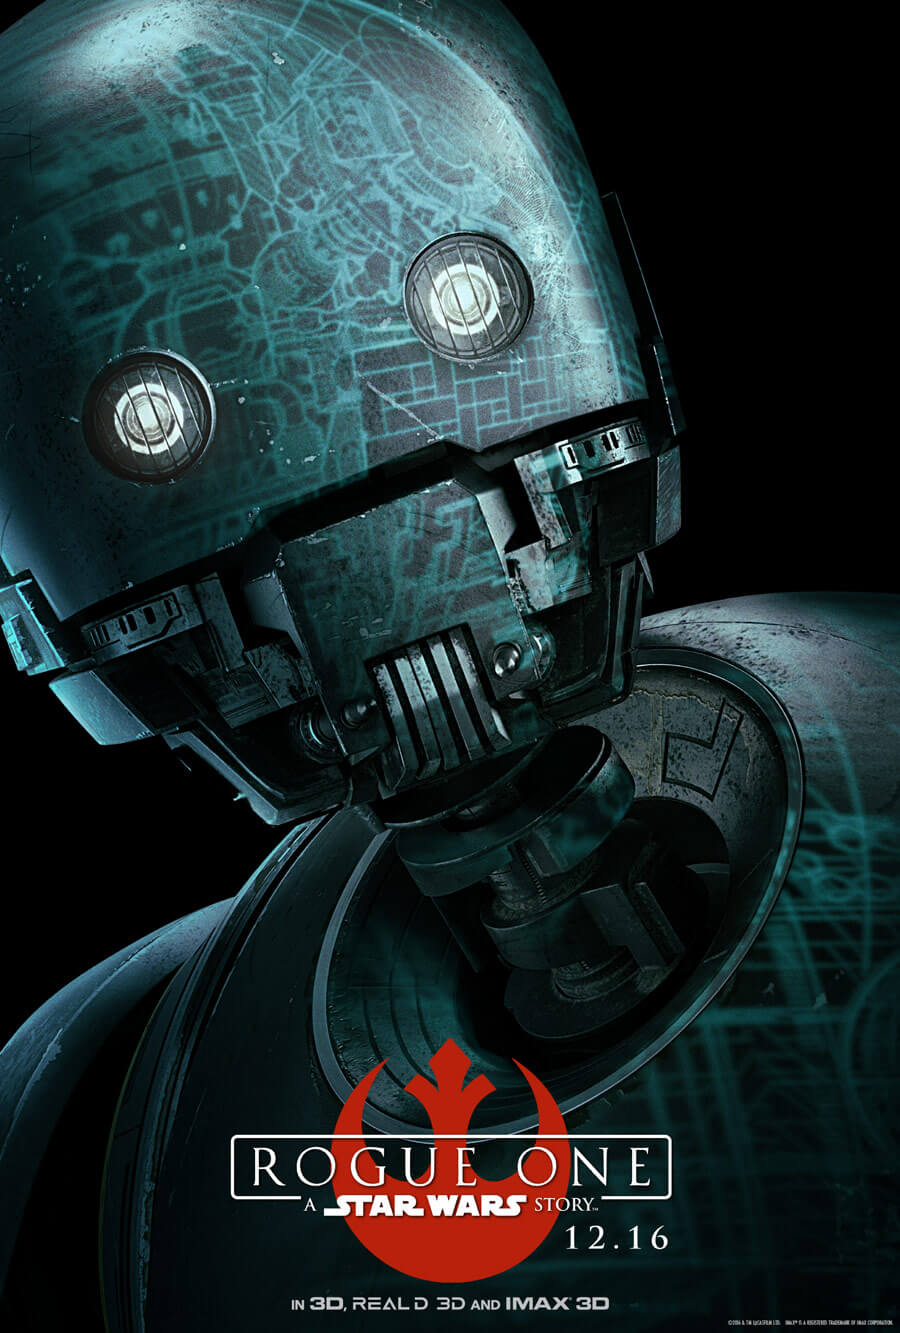 k-2SO - Rogue One A Star Wars Story